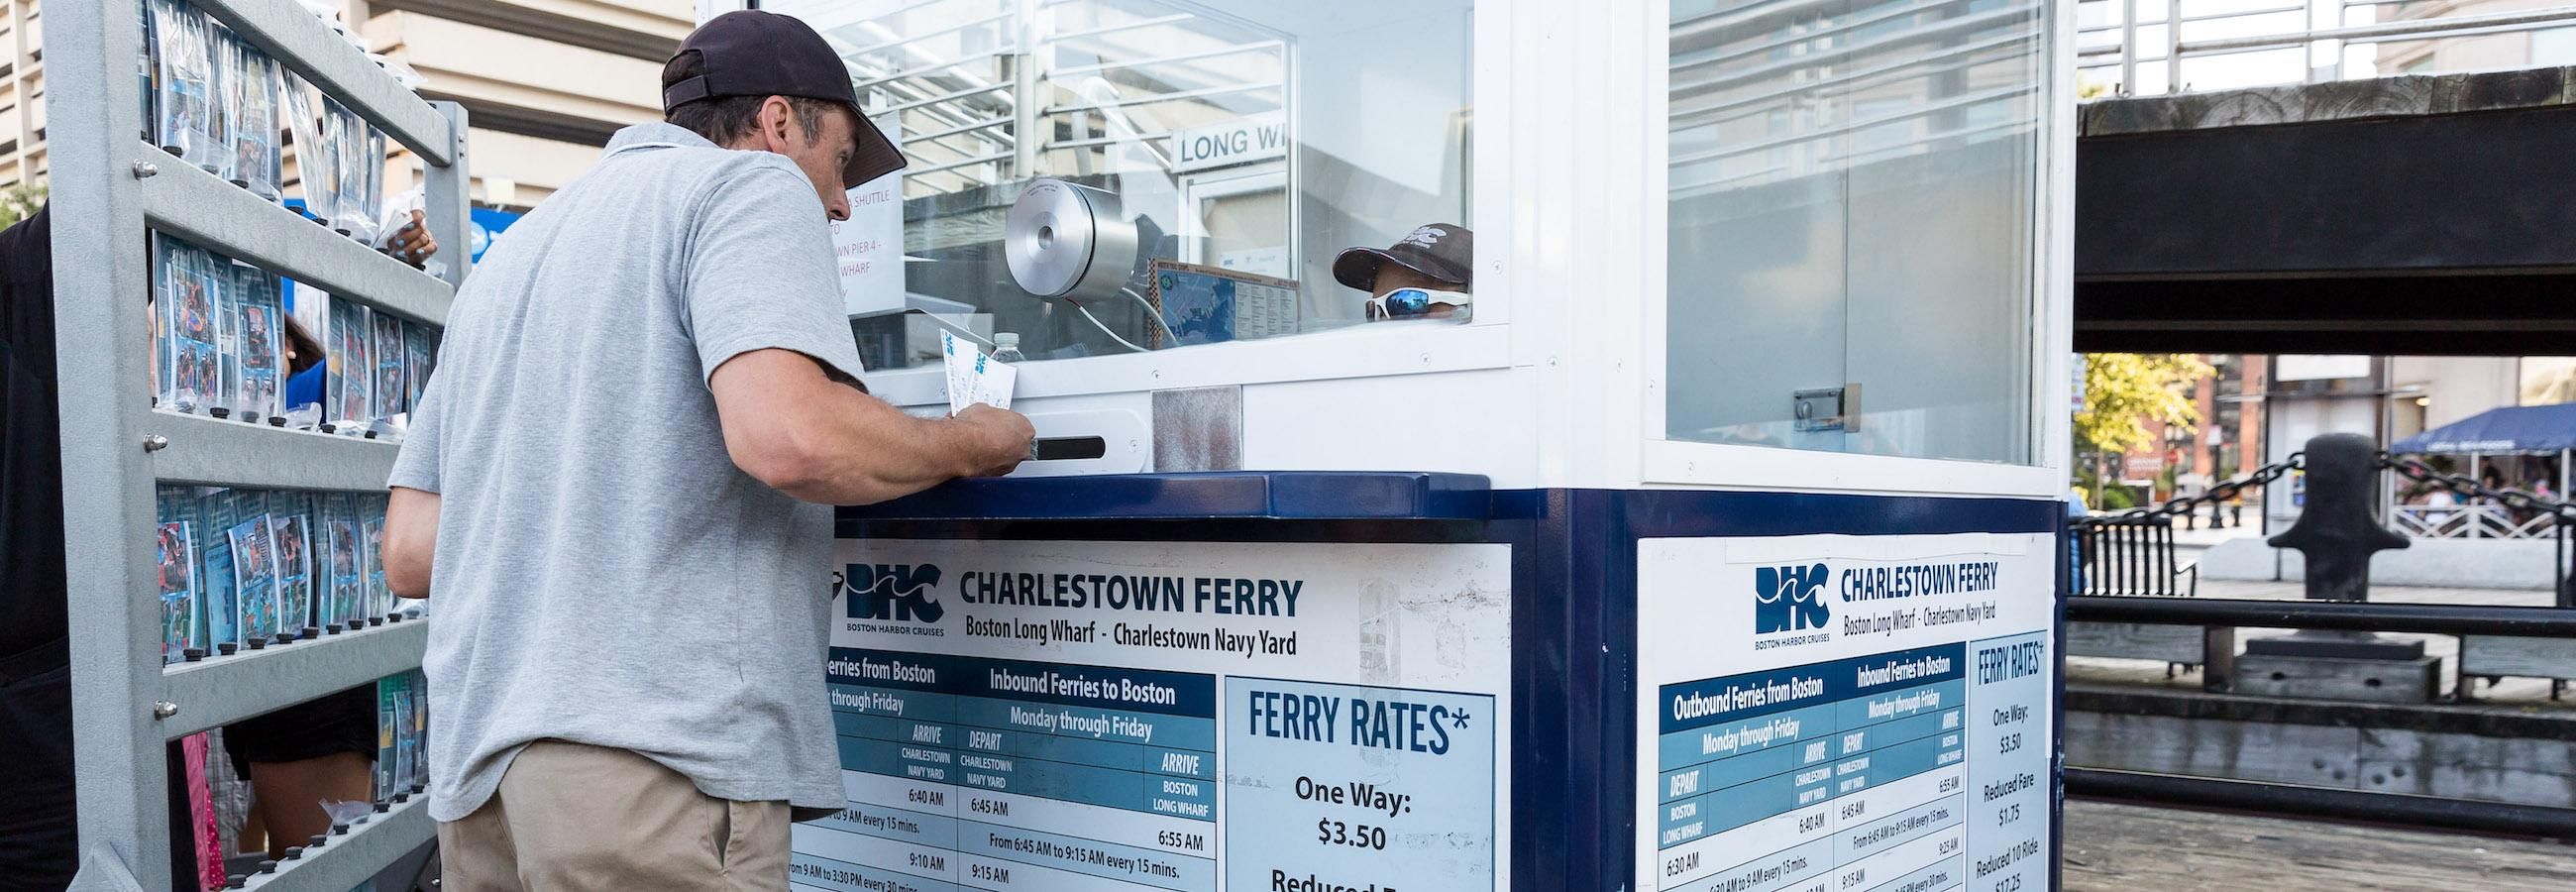 customer buying tickets for charlestown ferry